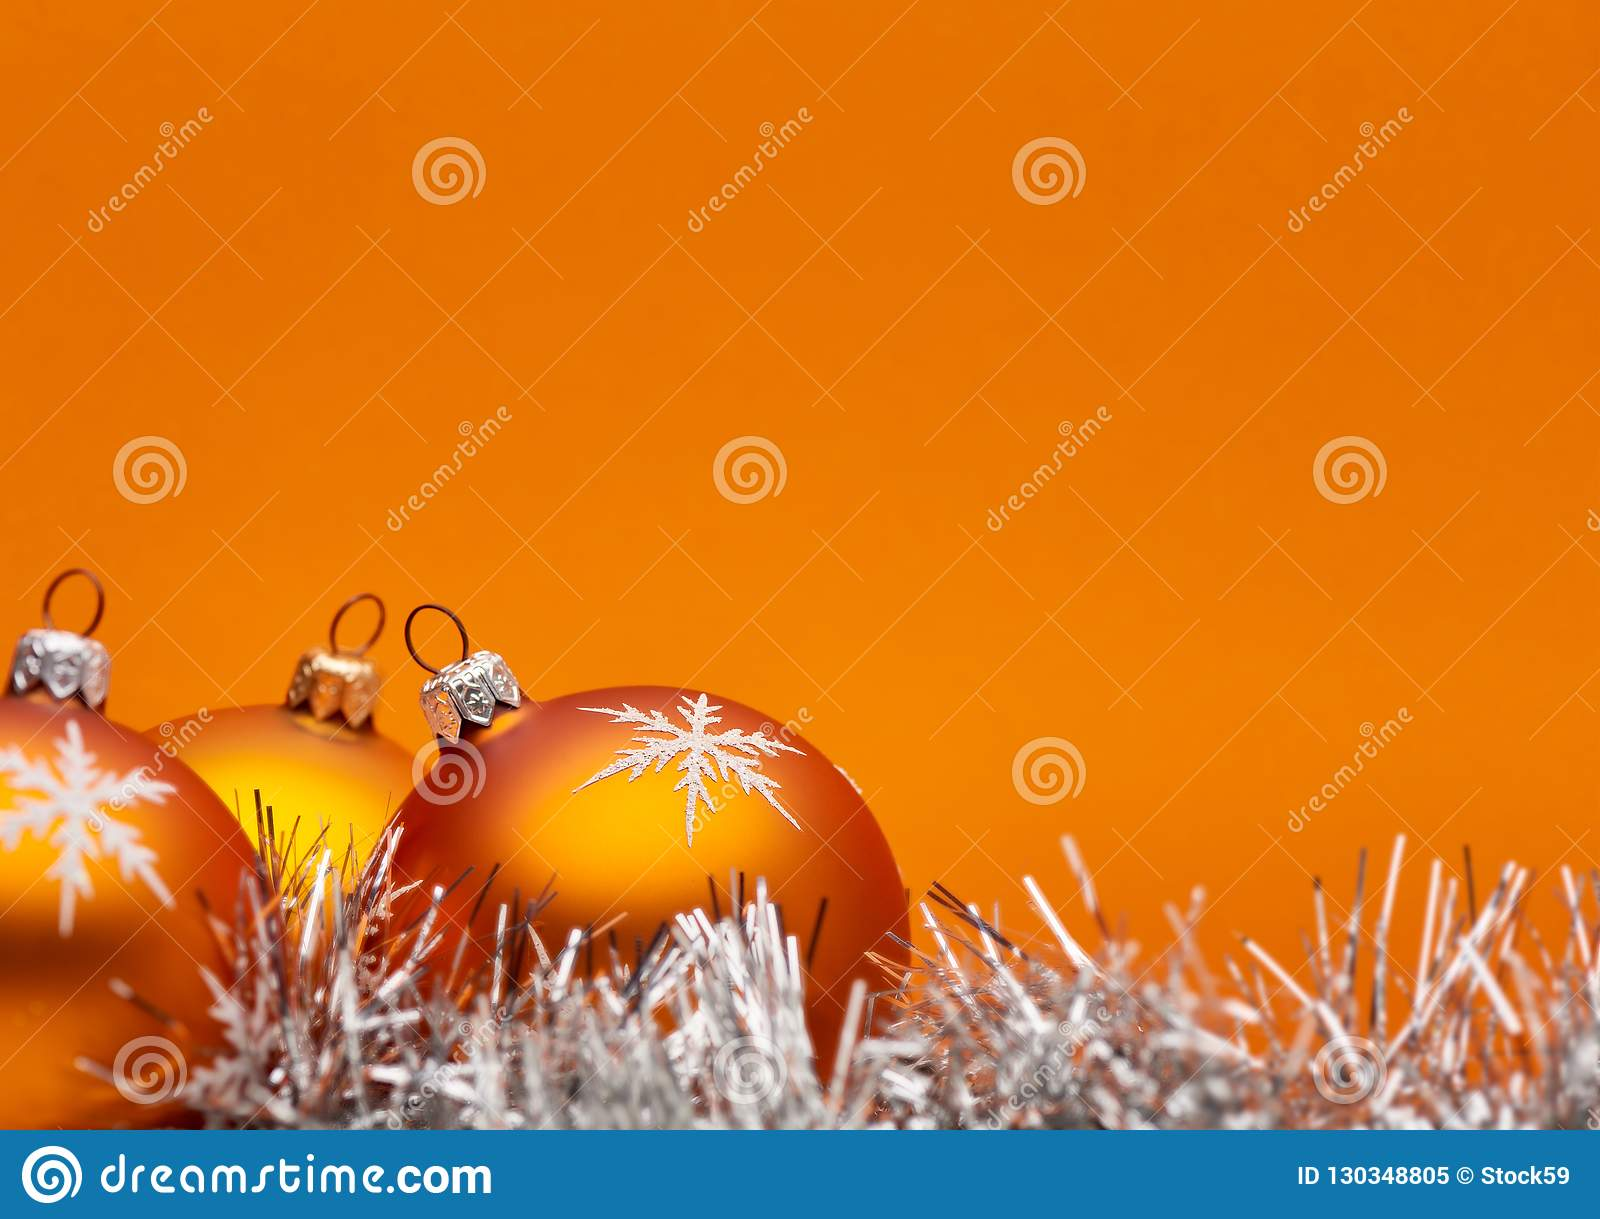 Three Orange Bauble Christmas Decorations Close Up Against An Orange Background With Space For Adding Text Stock Image Image Of Decorate Colour 130348805